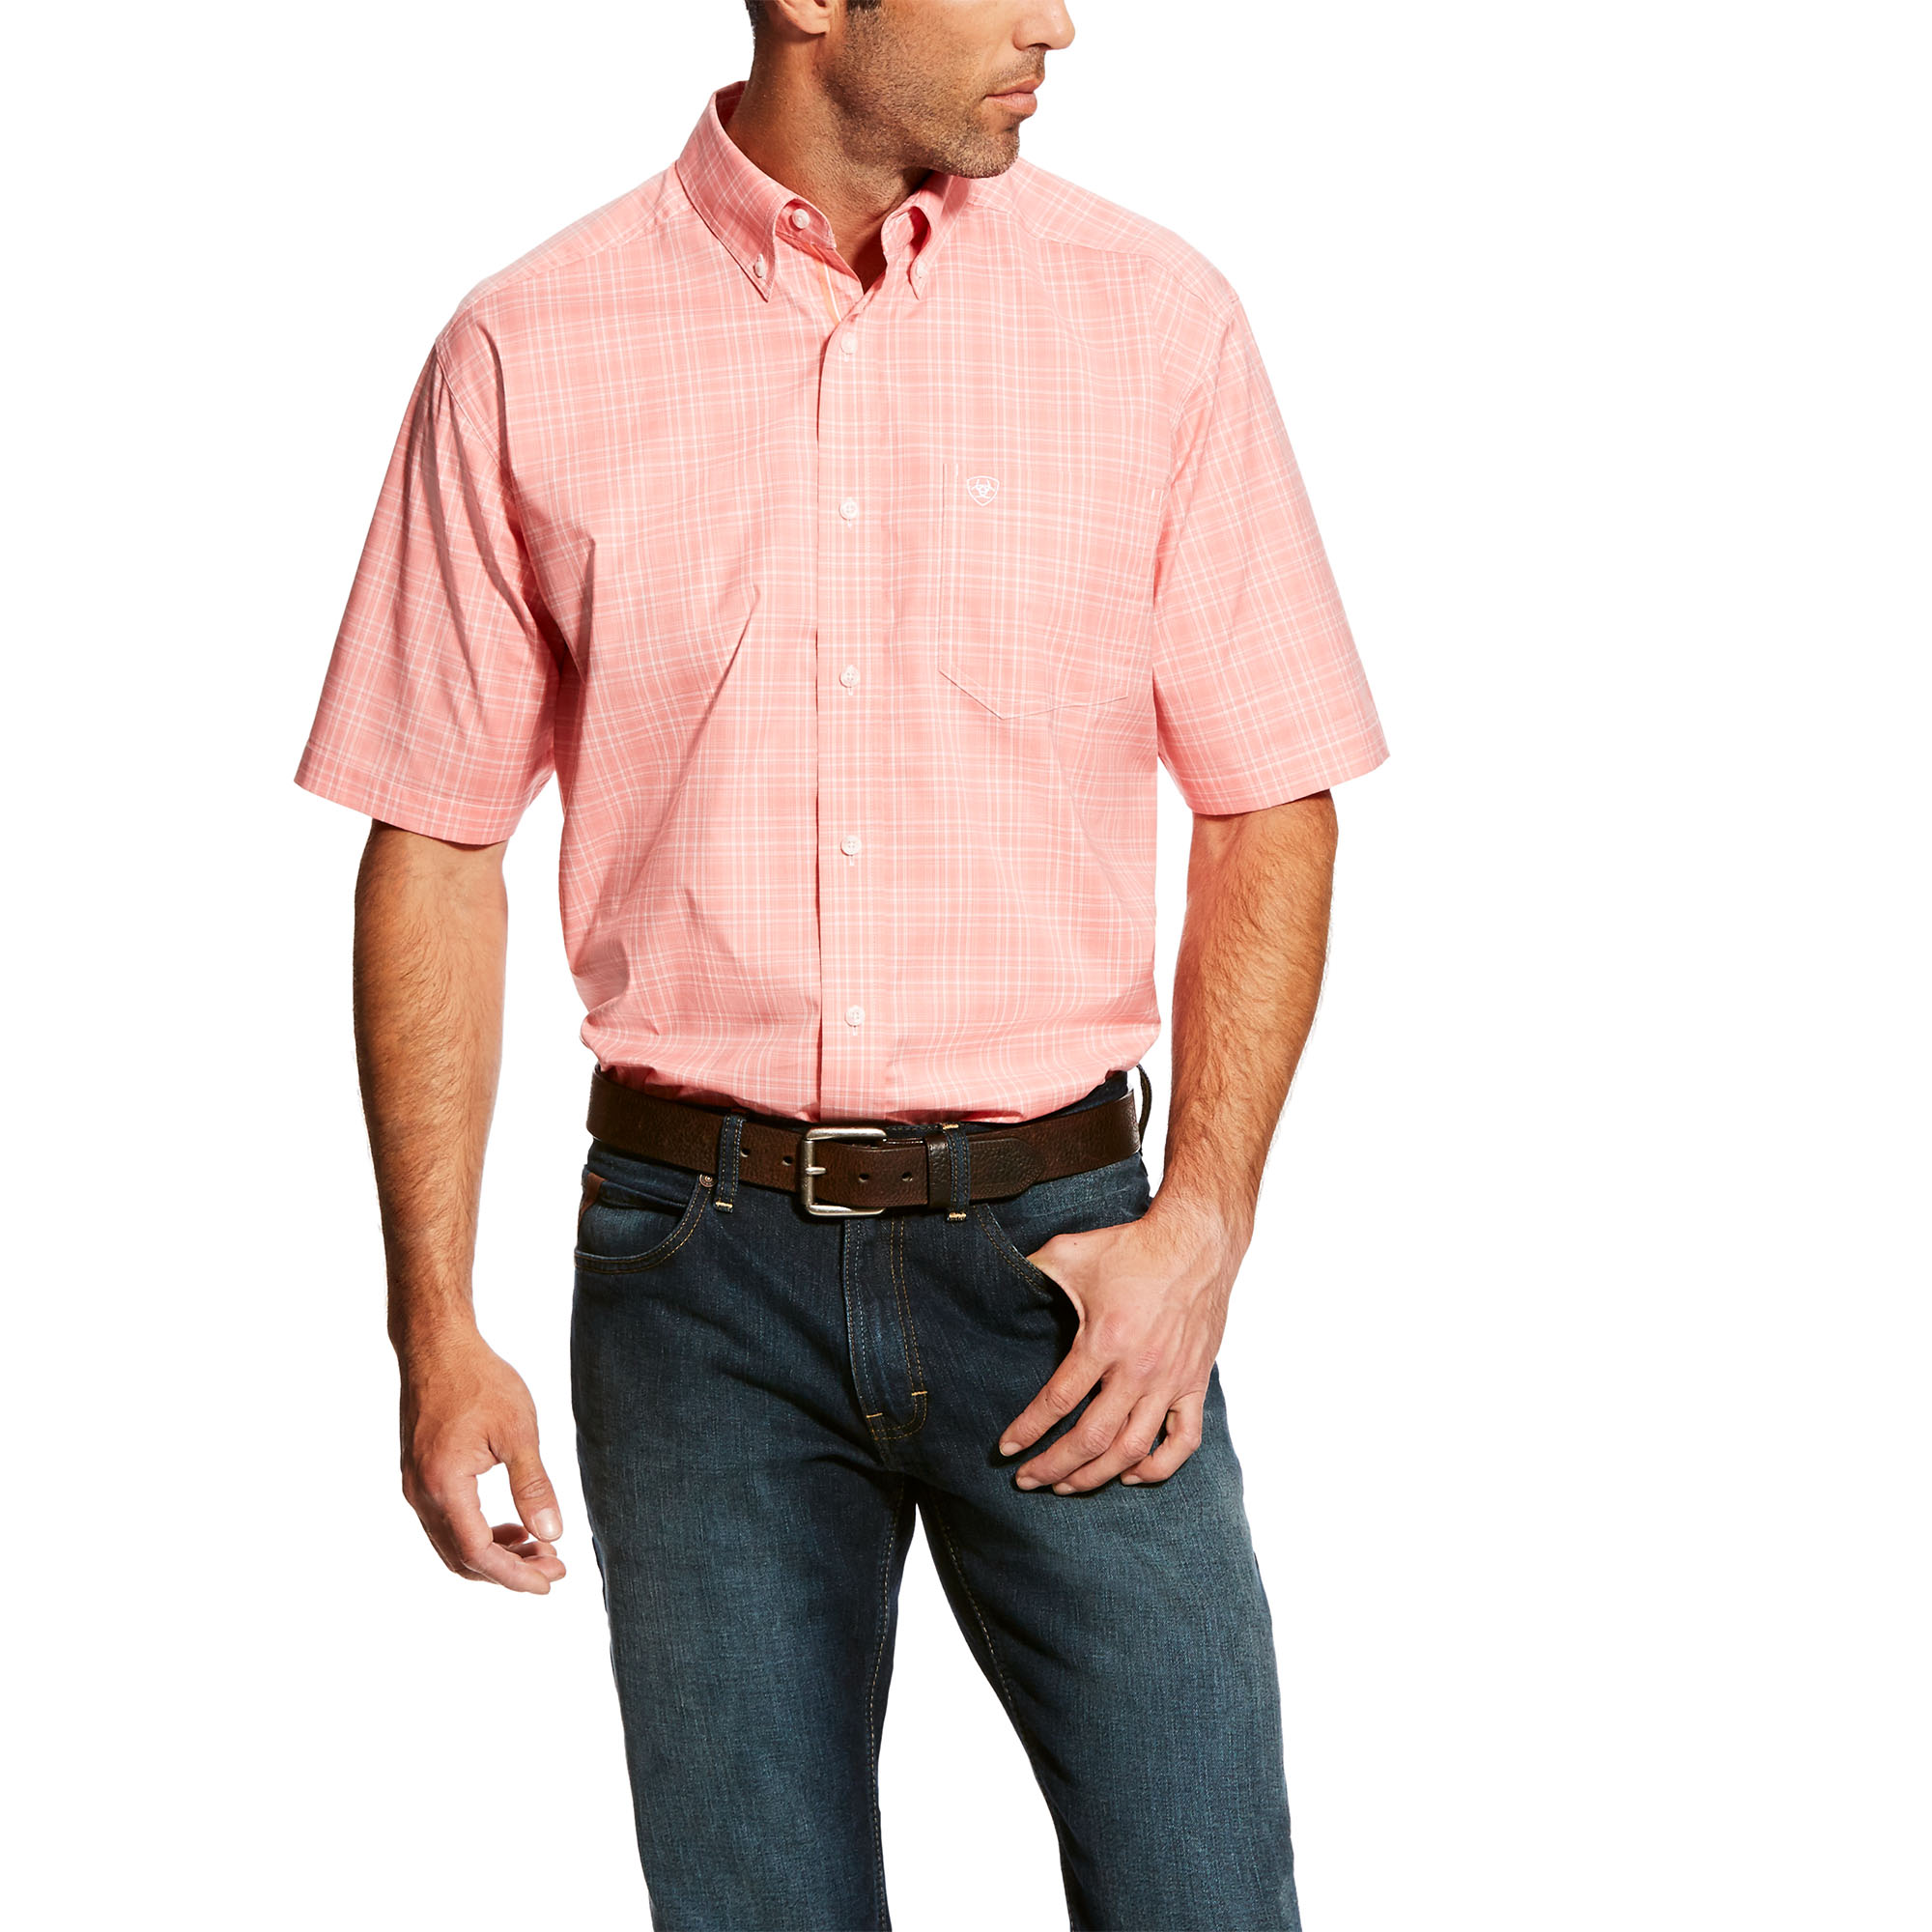 Ariat 10025827 Men's Harper SS Stretch Shirt Coral 319